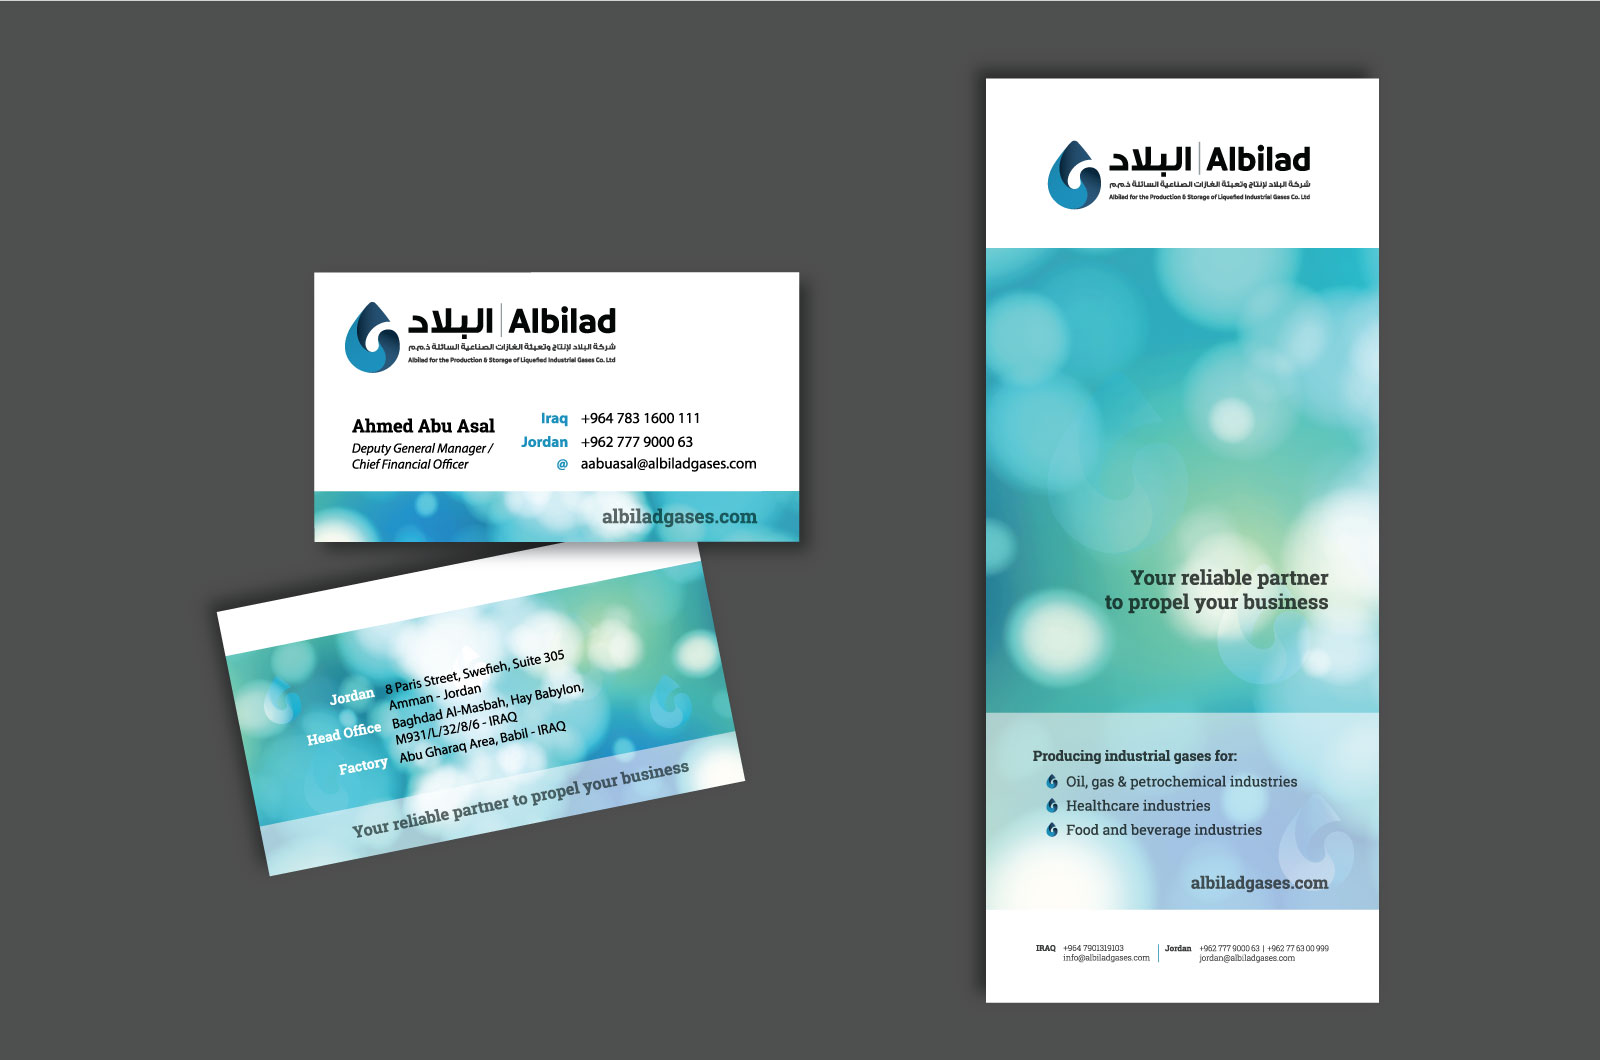 Albilad Industrial Gases branding design by zCreations.com